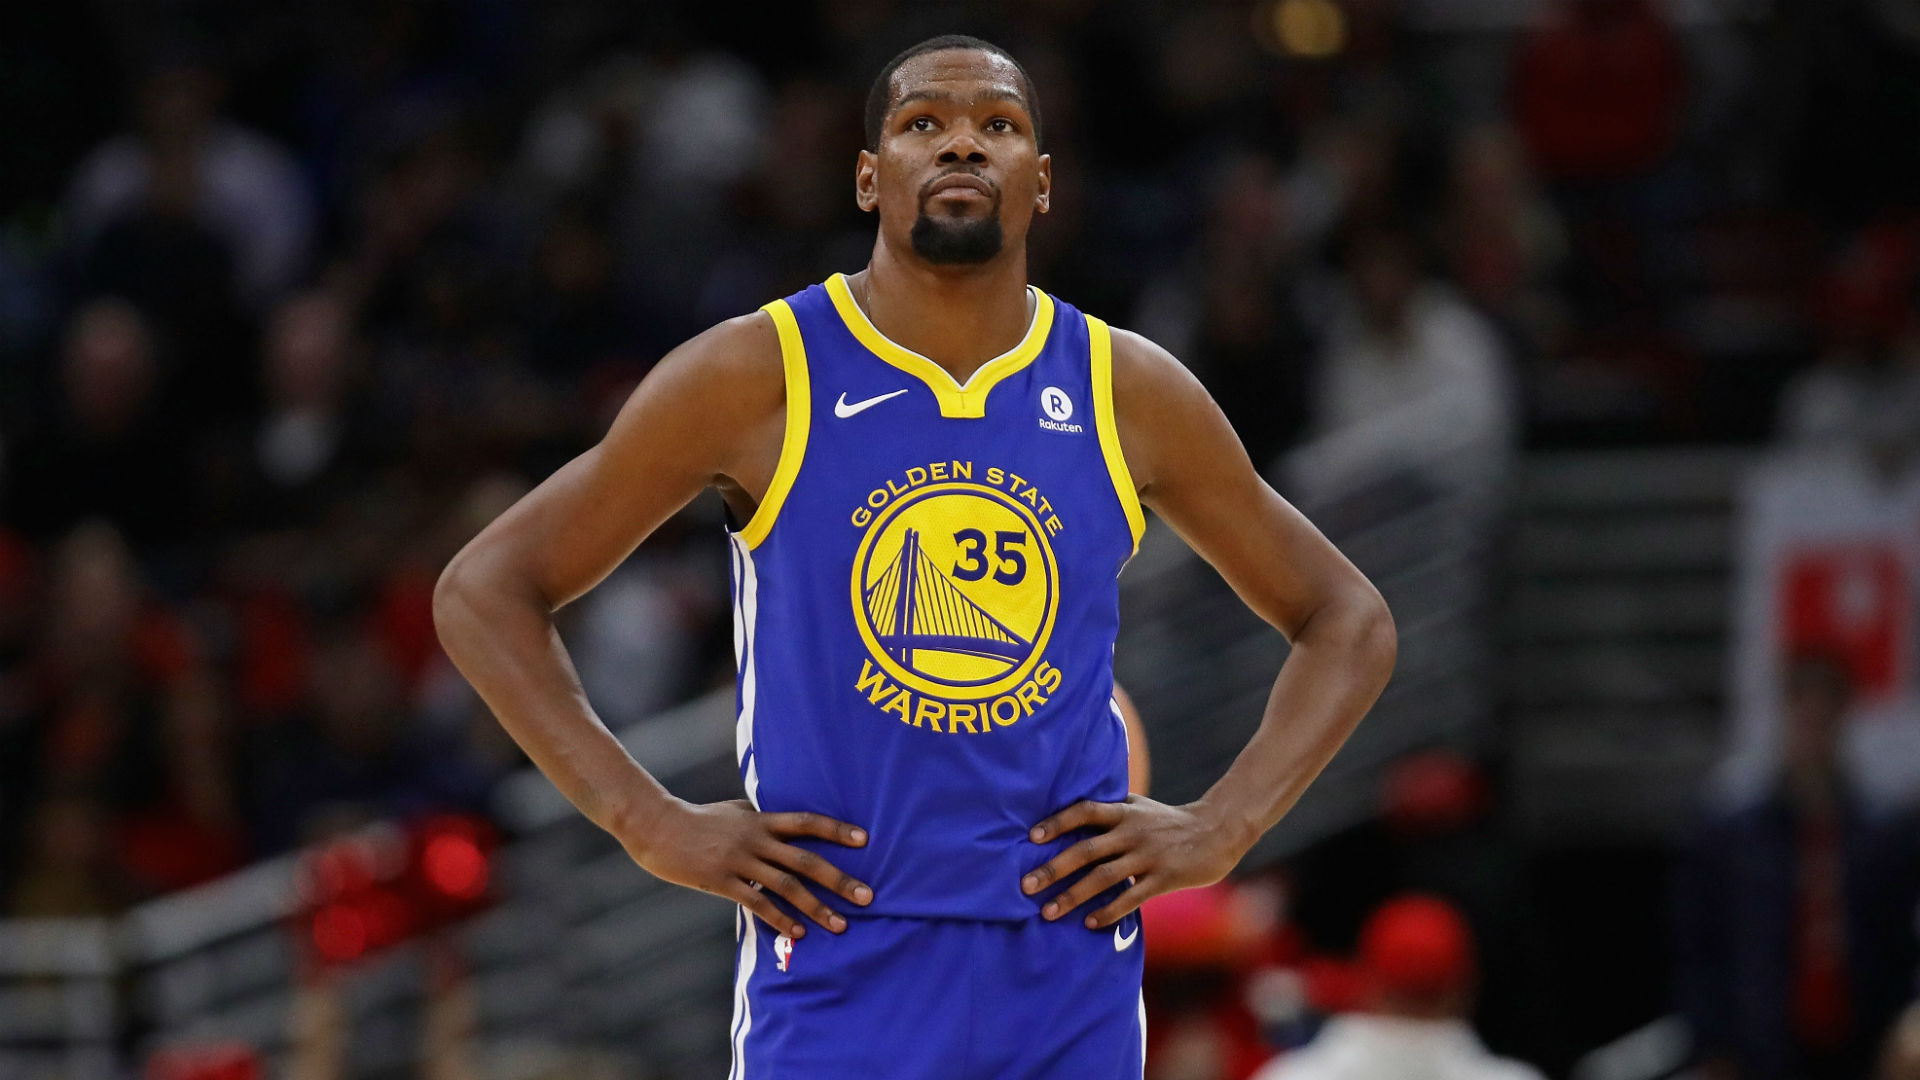 San Antonio Spurs vs. Golden State Warriors Betting Preview 04/14/18